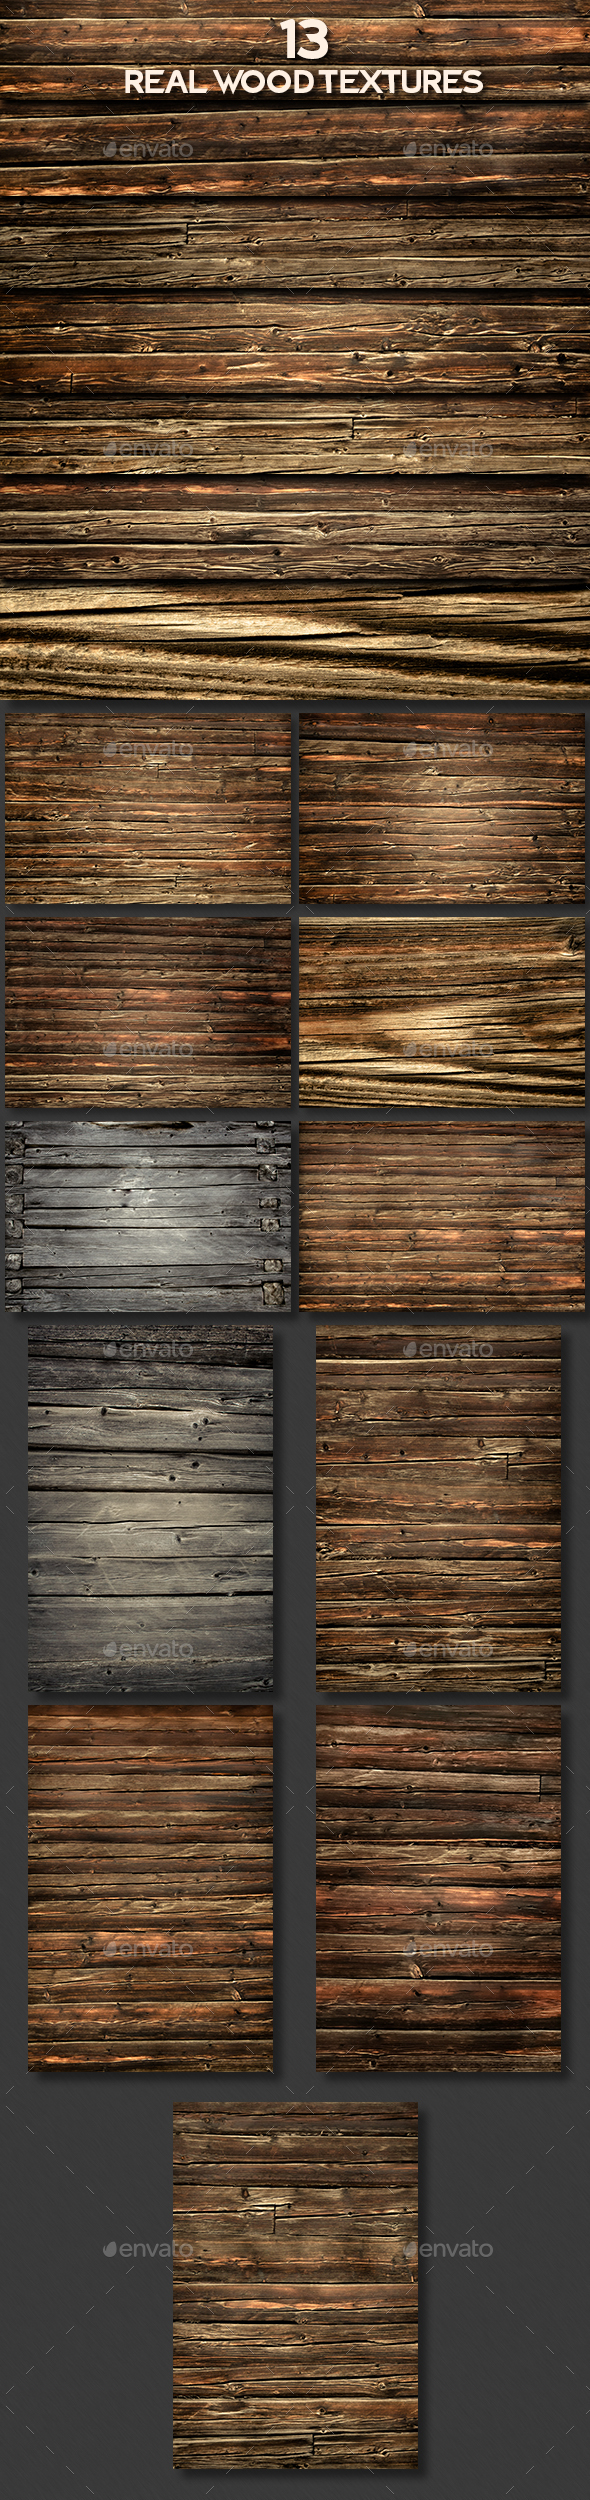 Real Wood Textures - Wood Textures